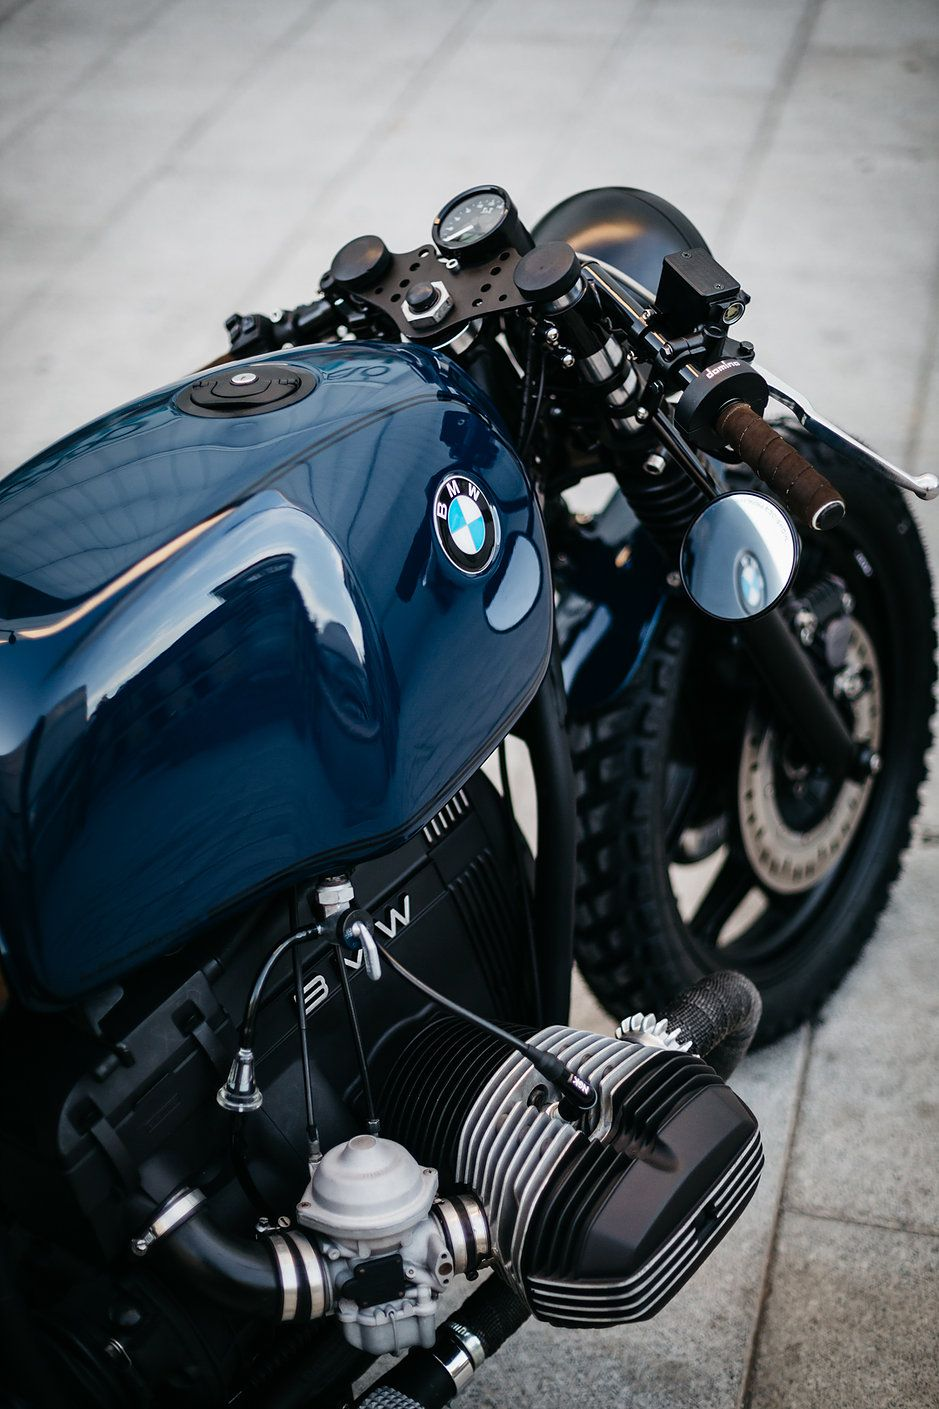 roa motorcycles cafe racer | bmw r80 ing | bmw cafe racer ideas